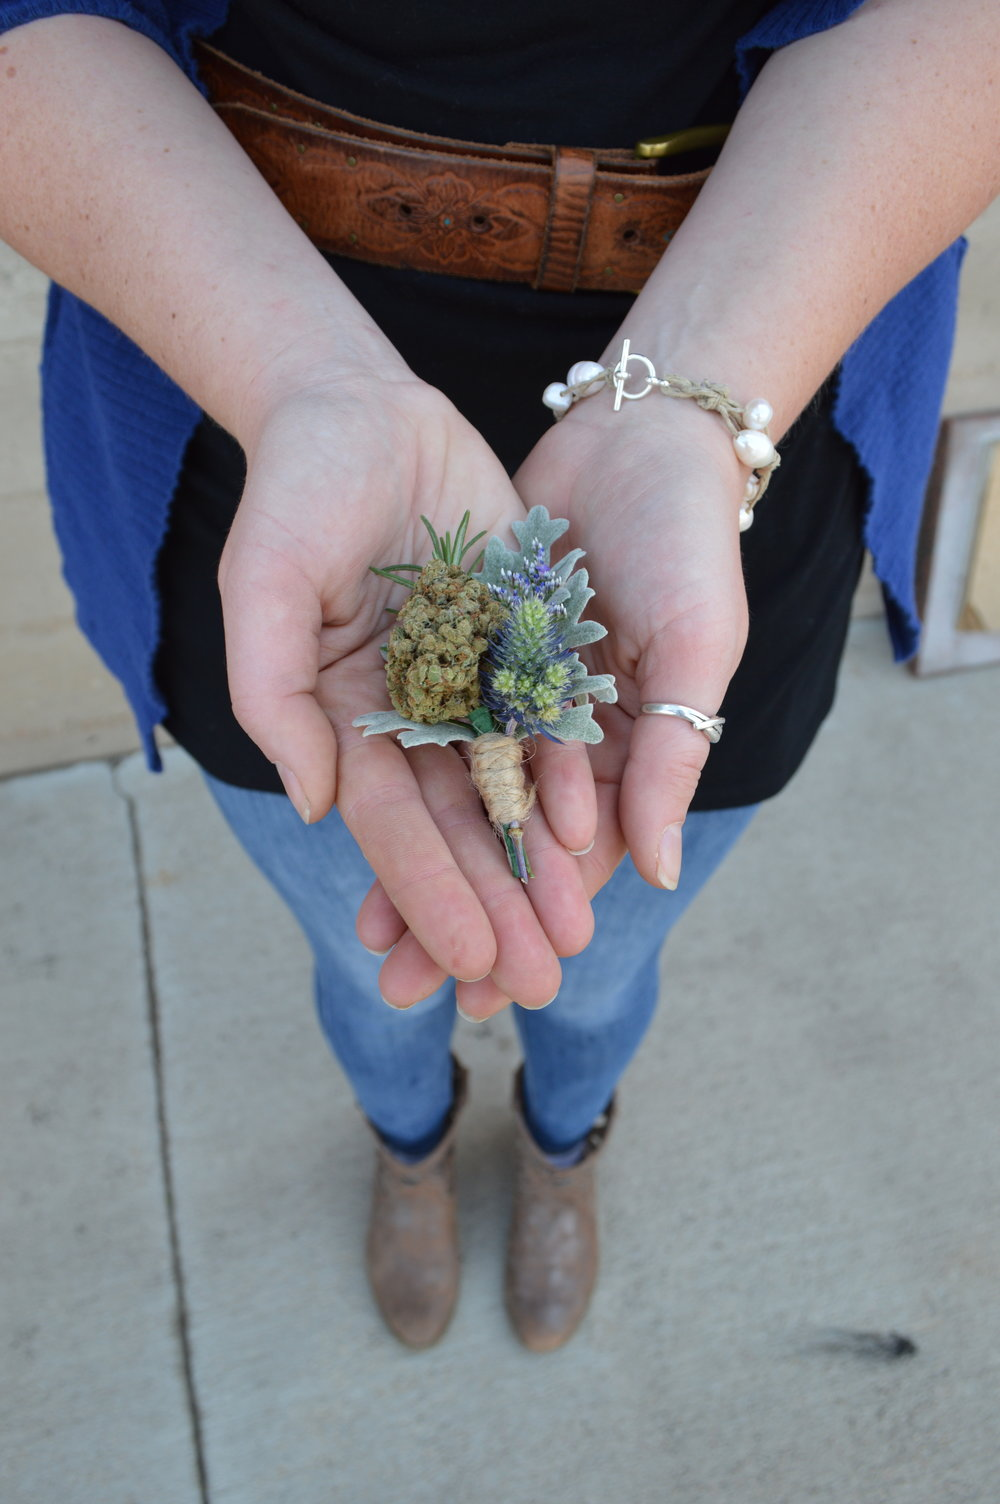 bec koop of irie weddings & events, colorado, photo: sharon letts (available on stock pot images.com)